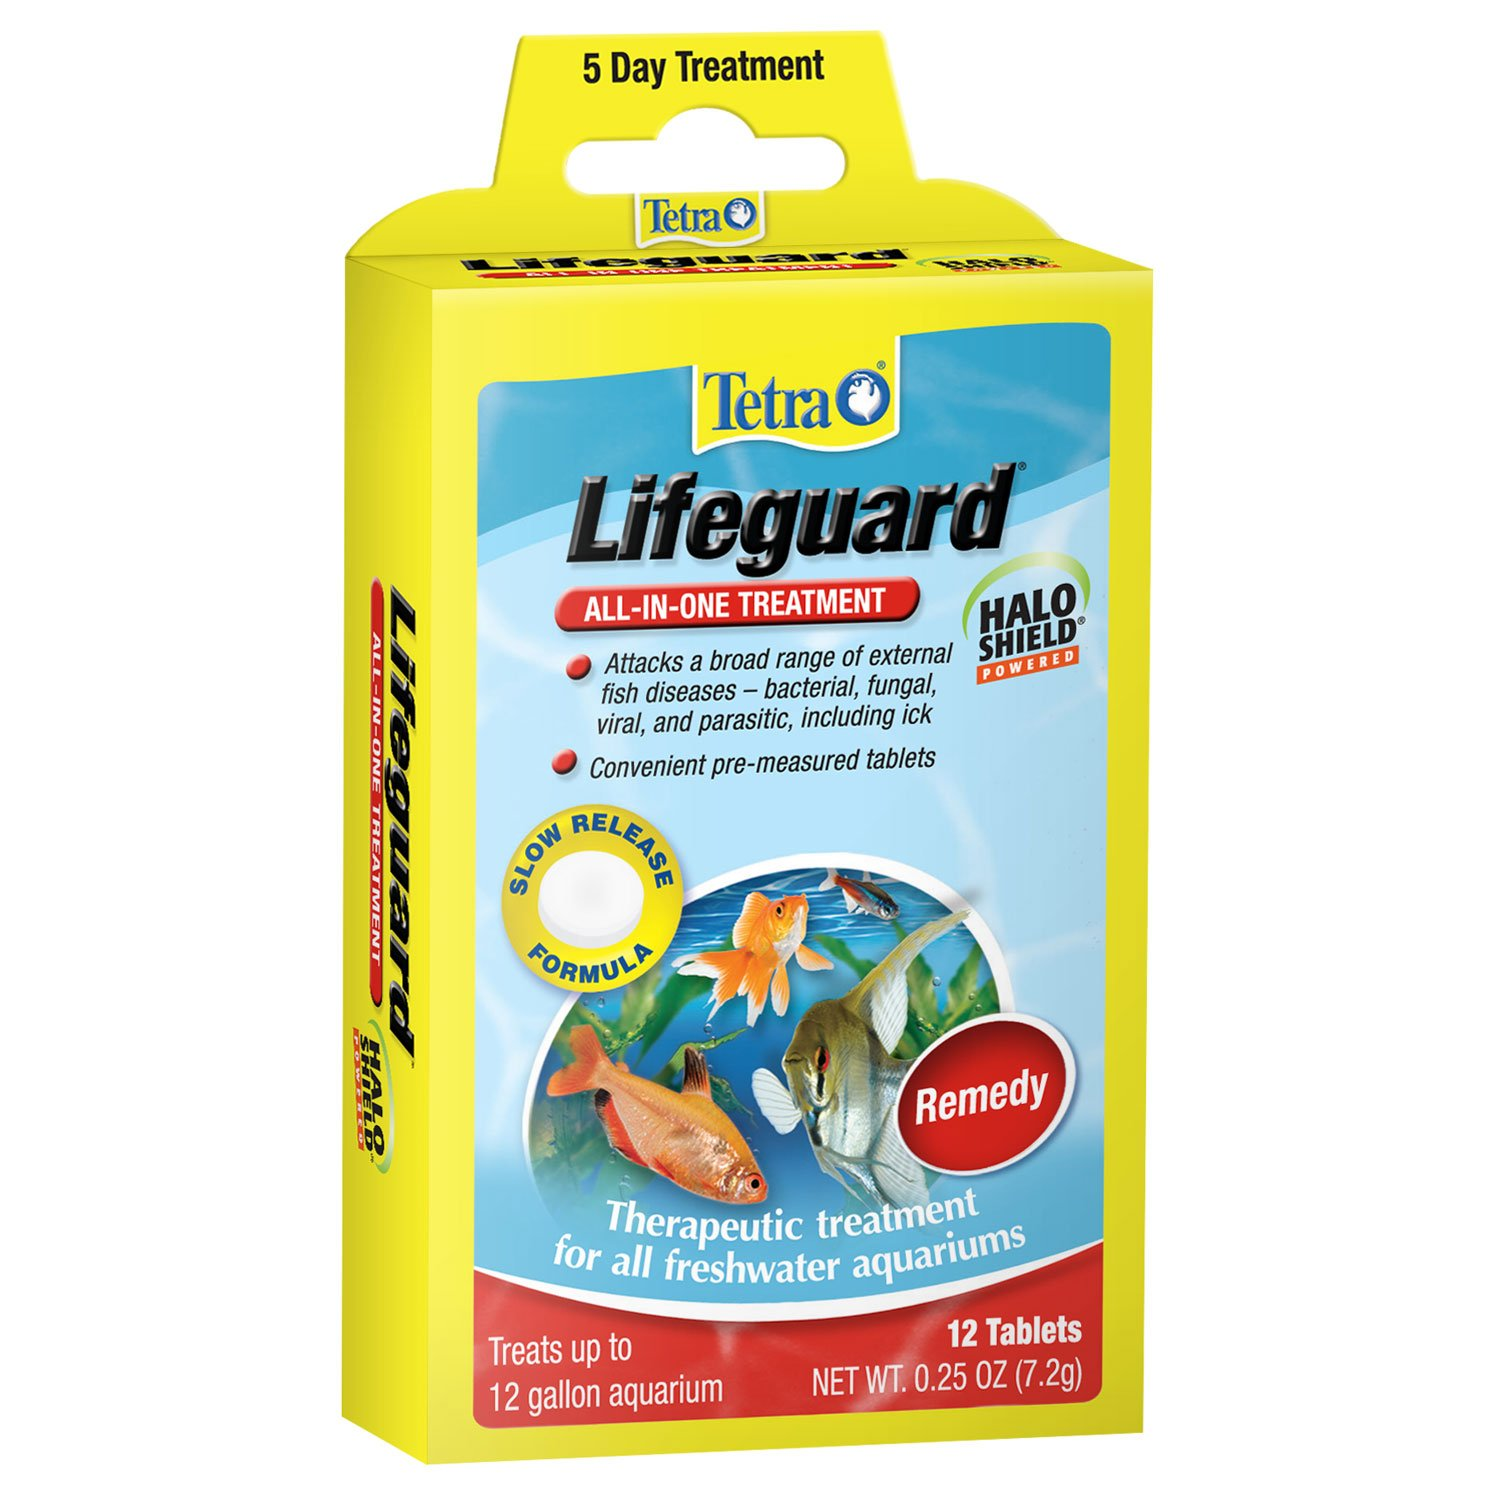 Tetra Lifeguard All-In-One Freshwater Aquarium Treatment